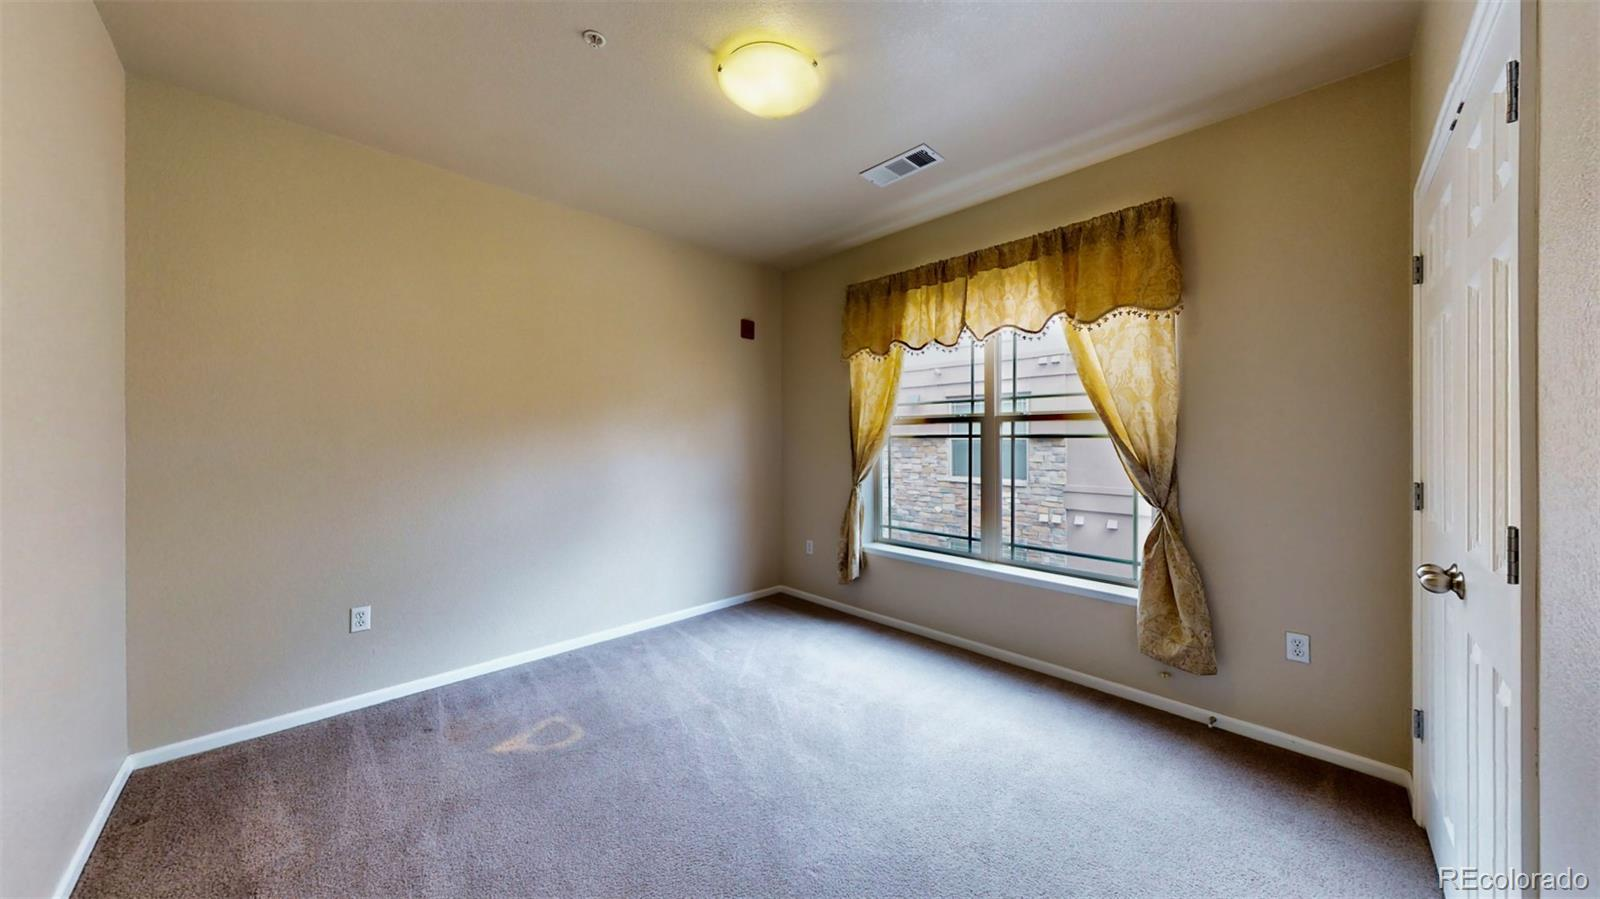 MLS# 3562922 - 16 - 8123 W 51st Place #202, Arvada, CO 80002